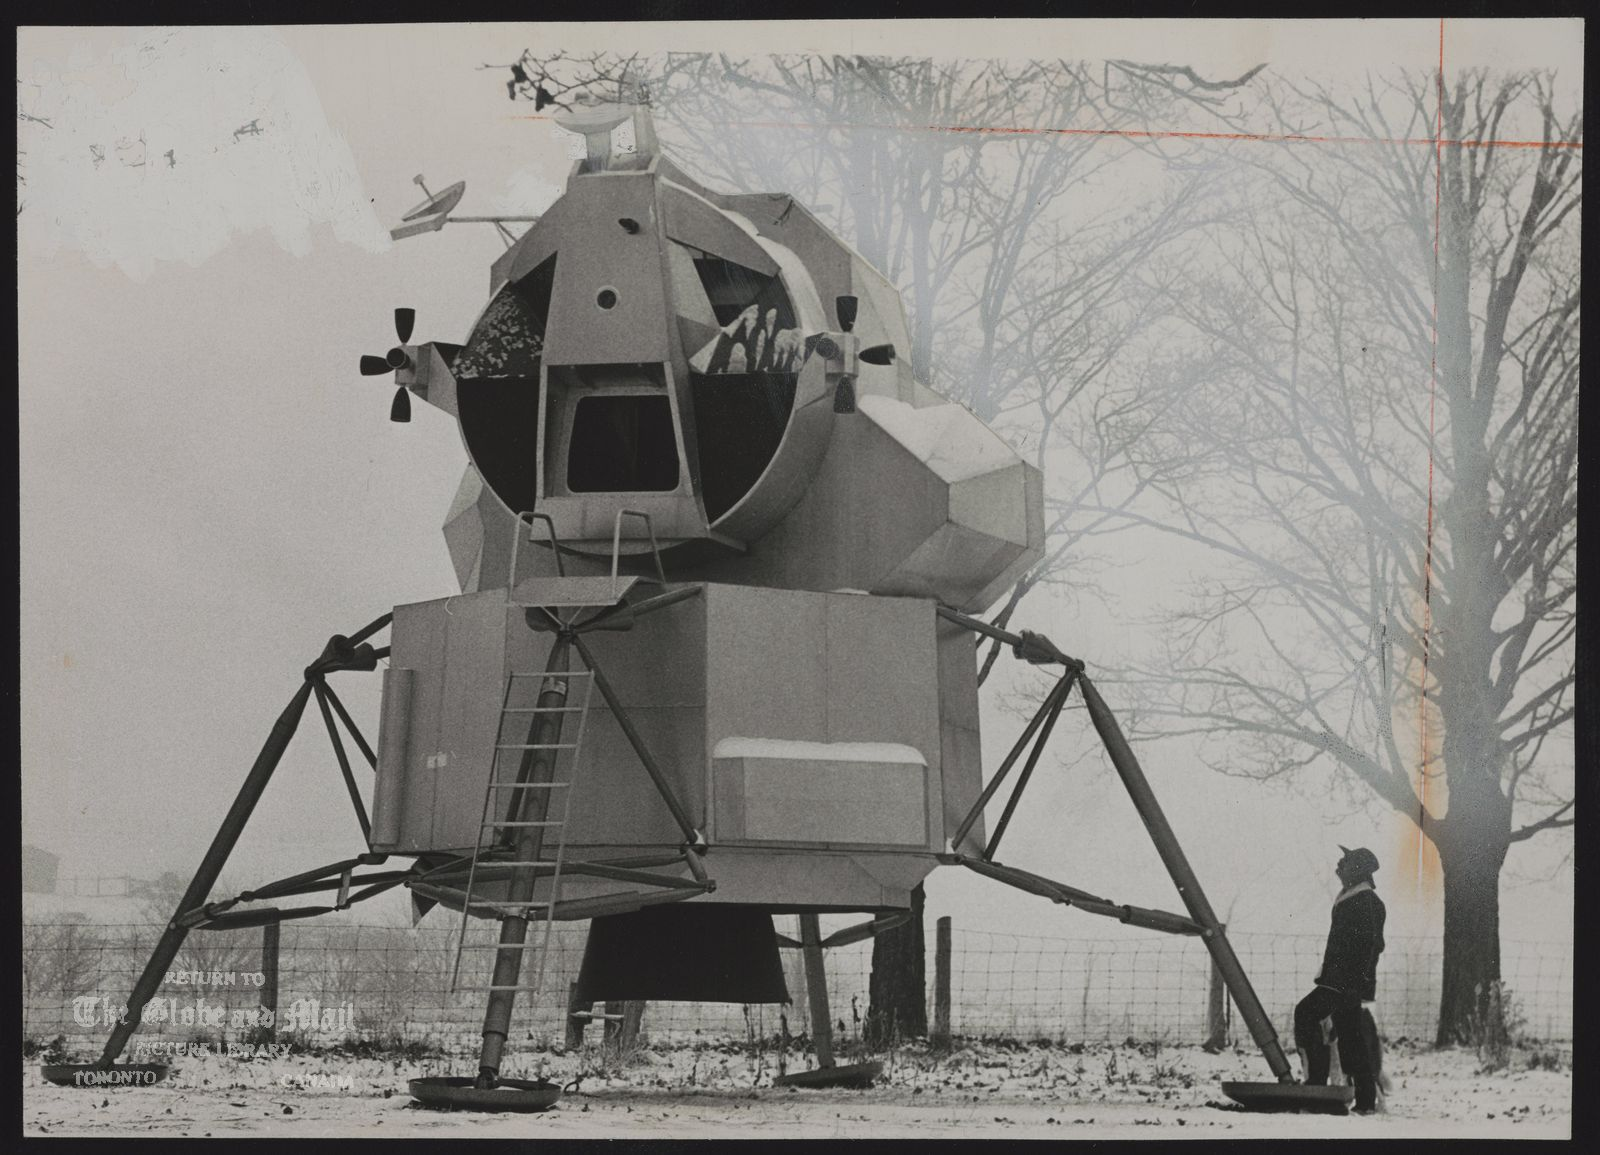 William LISHMAN Pickering.Sculptor (Model of lunar landing module in his back yard may be turned into guest house)